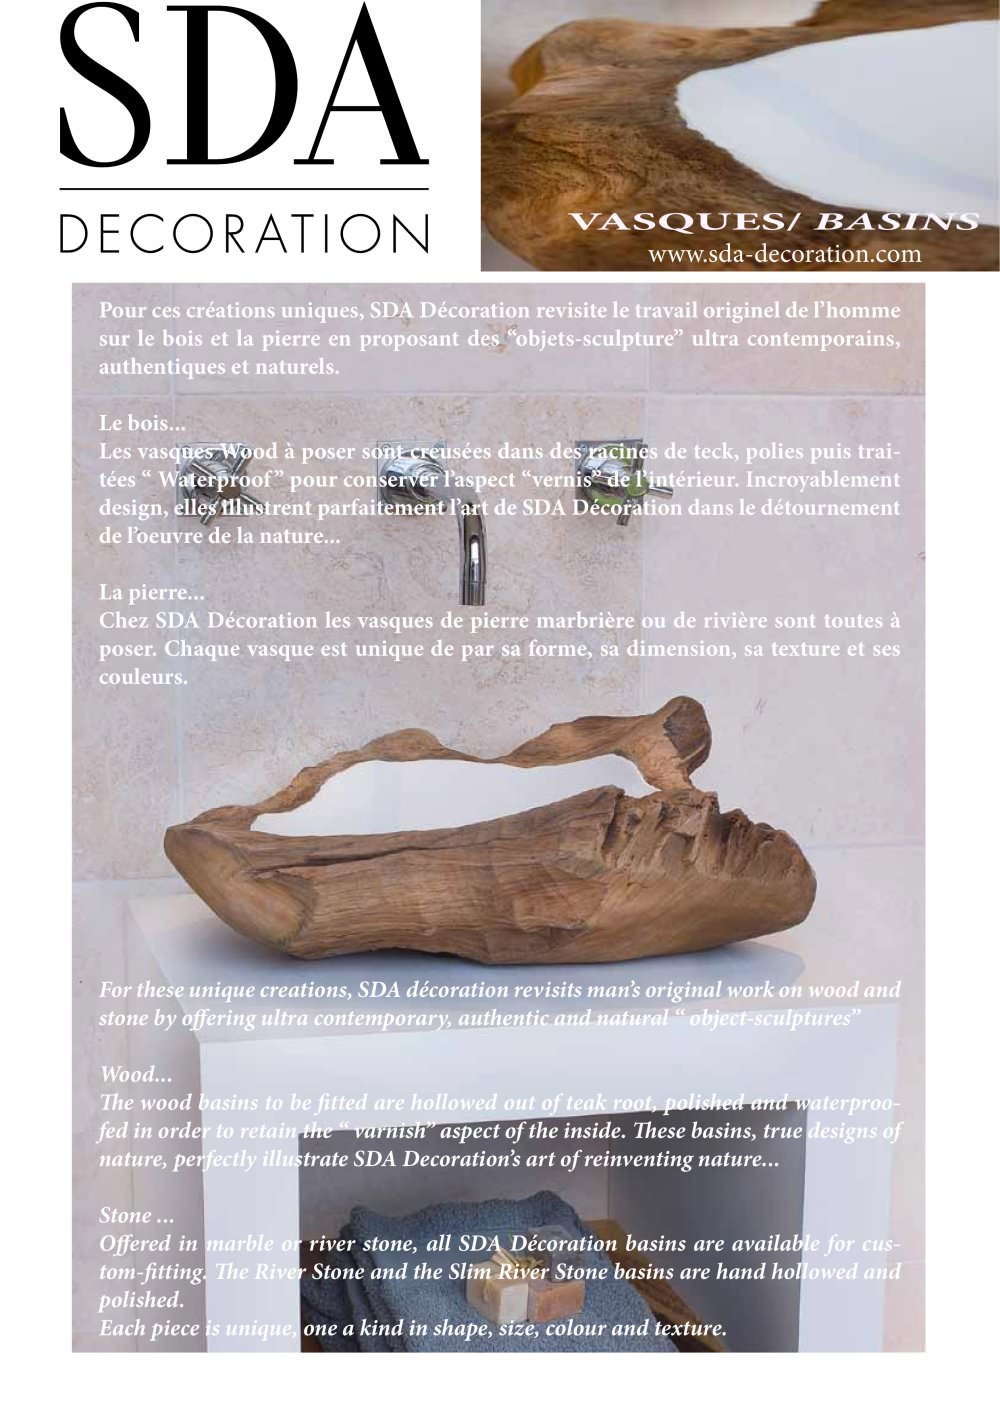 Creation Decoration Interieur Vasques Sda Decoration Pdf Katalog Beschreibung Prospekt